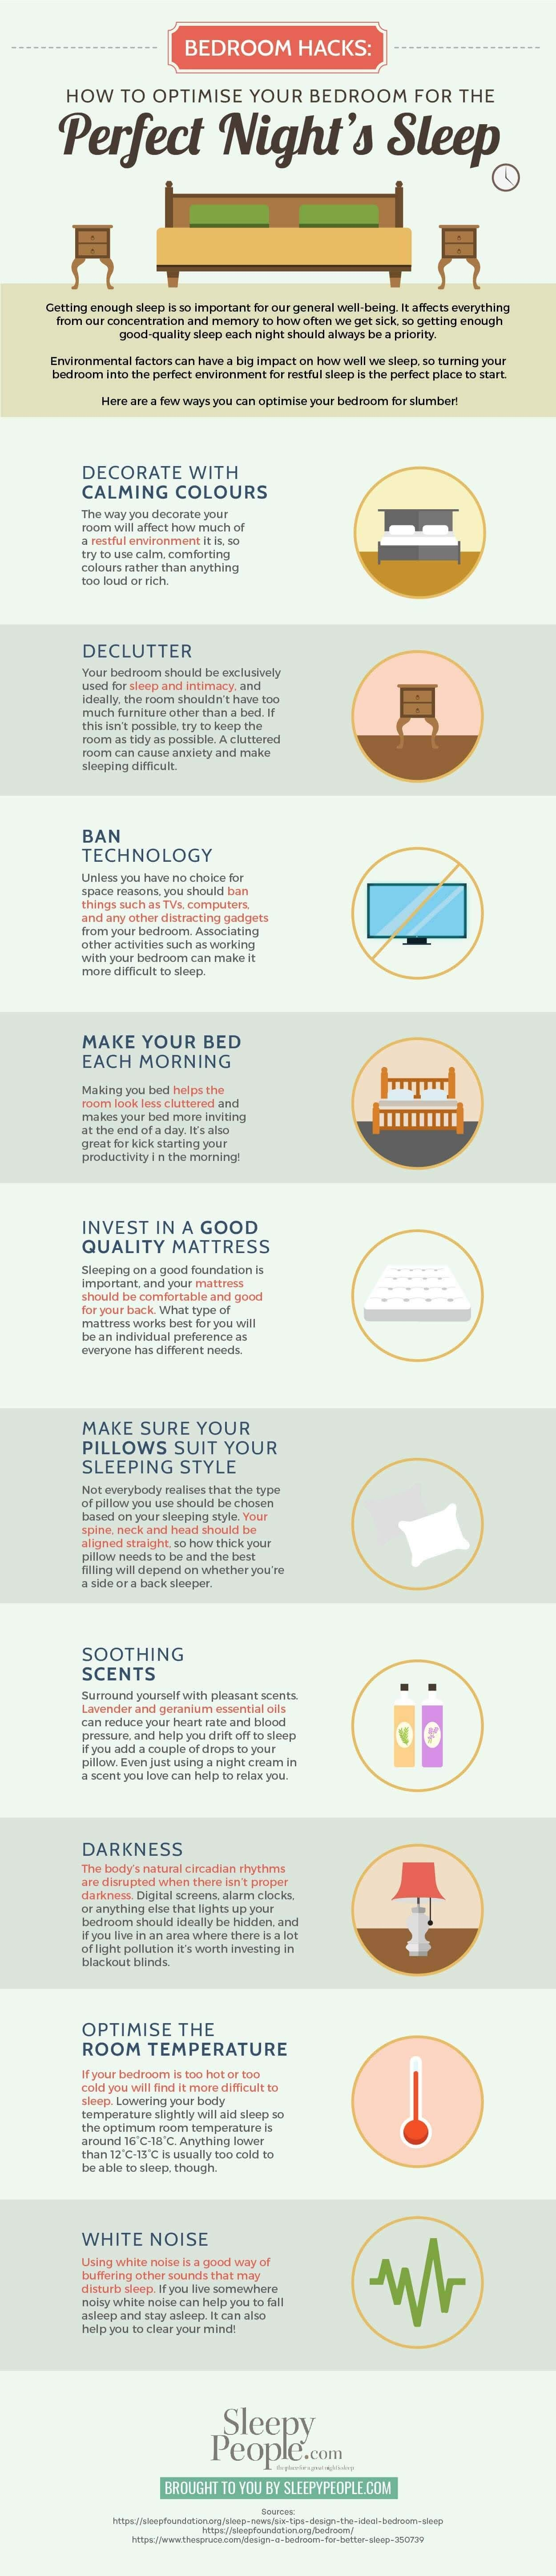 Bedroom Hacks: How To Optimise Your Bedroom For The Perfect Night's Sleep #Infographic